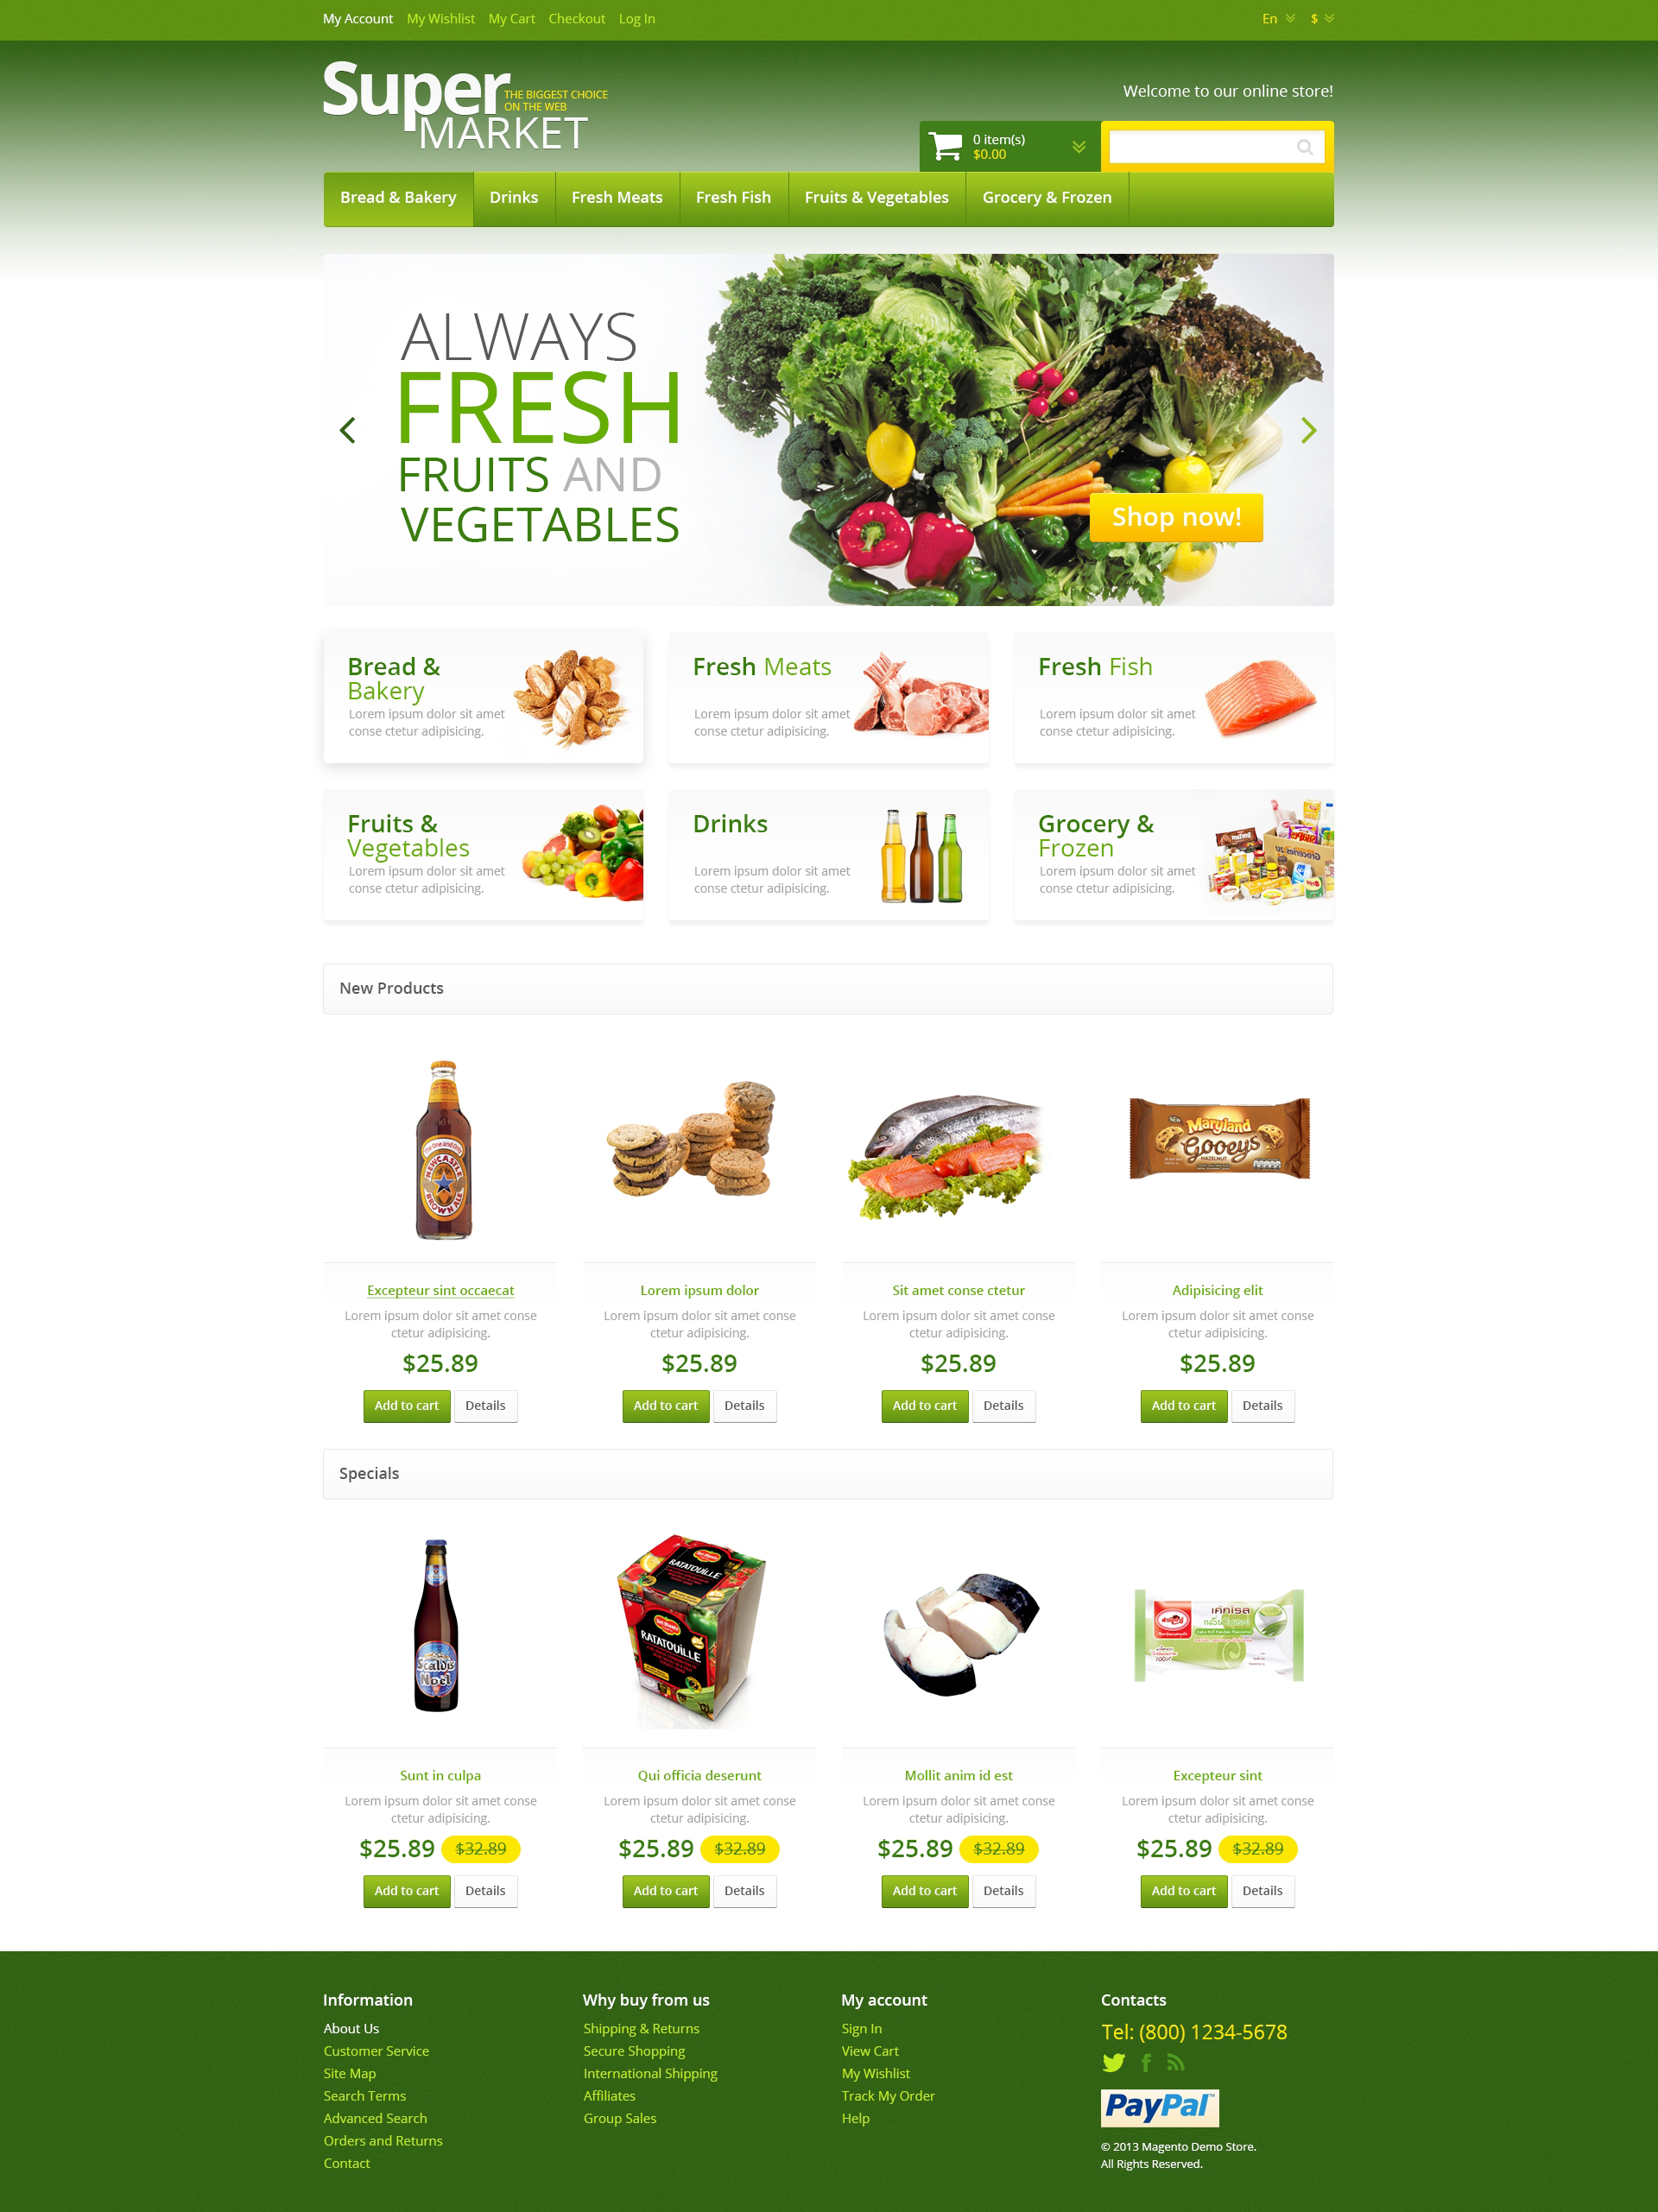 Food Ordering Website Design